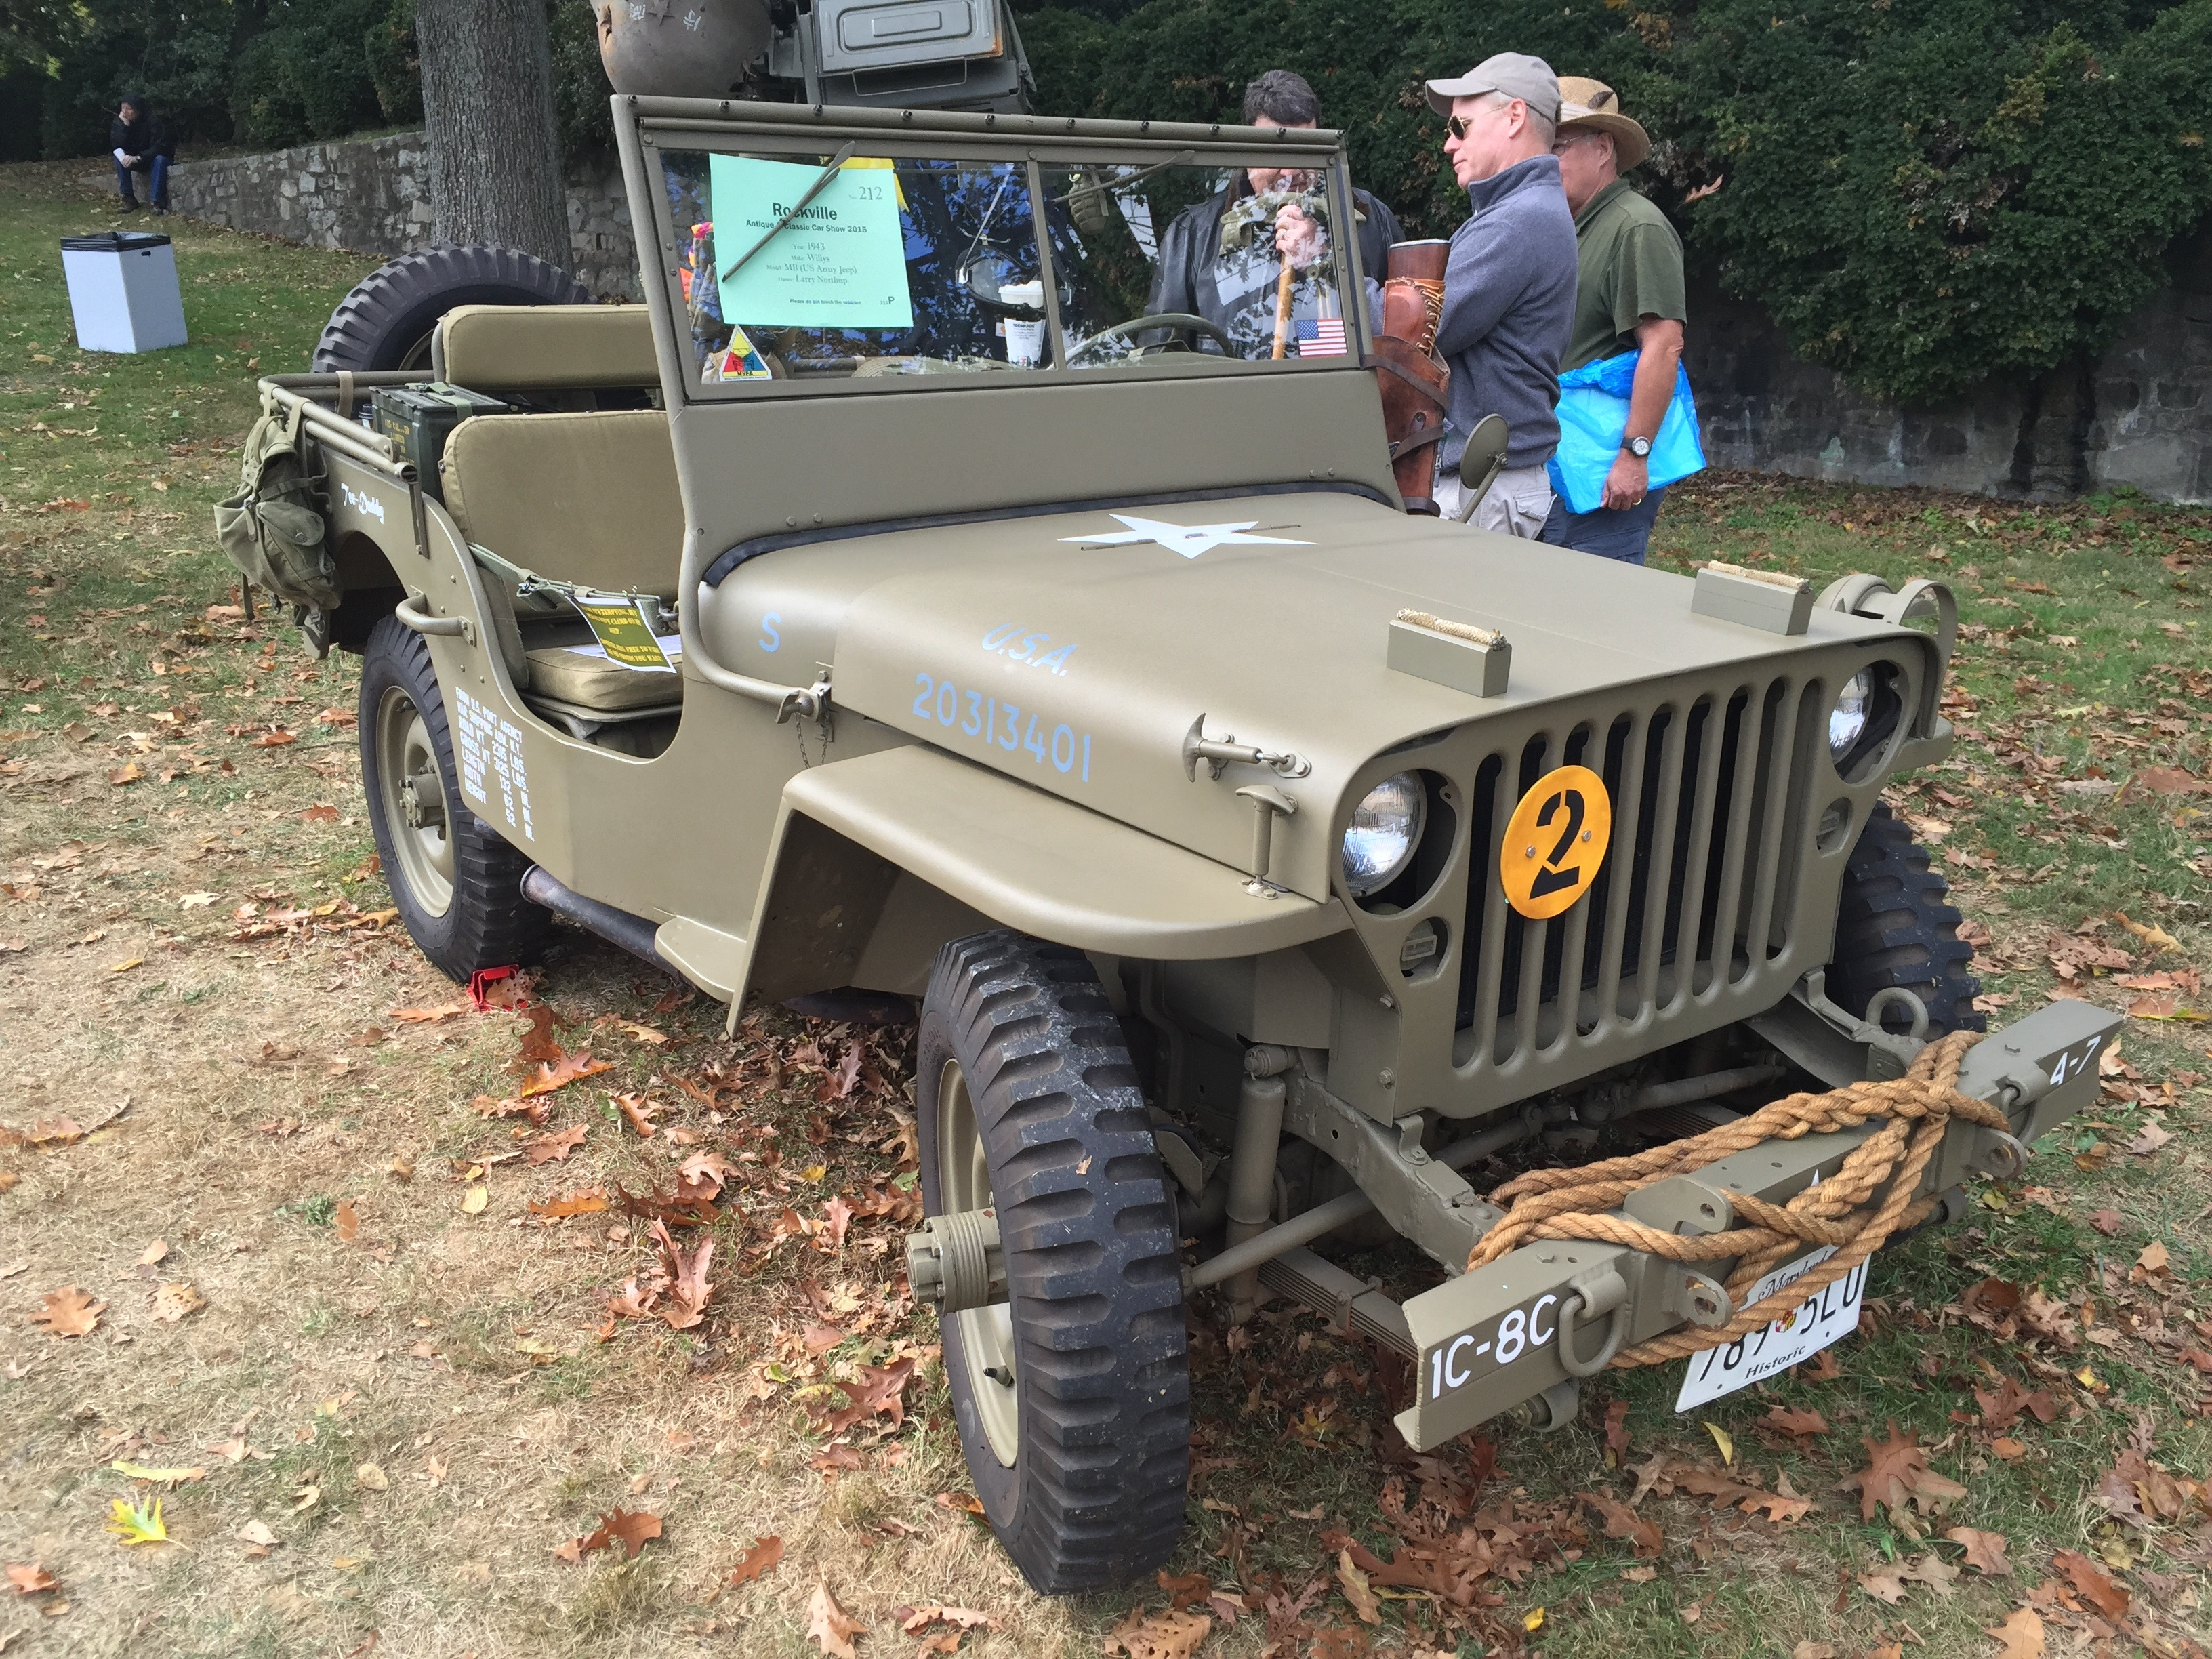 1943 willys mb us army jeep at 2015 rockville show 1of3 jpg